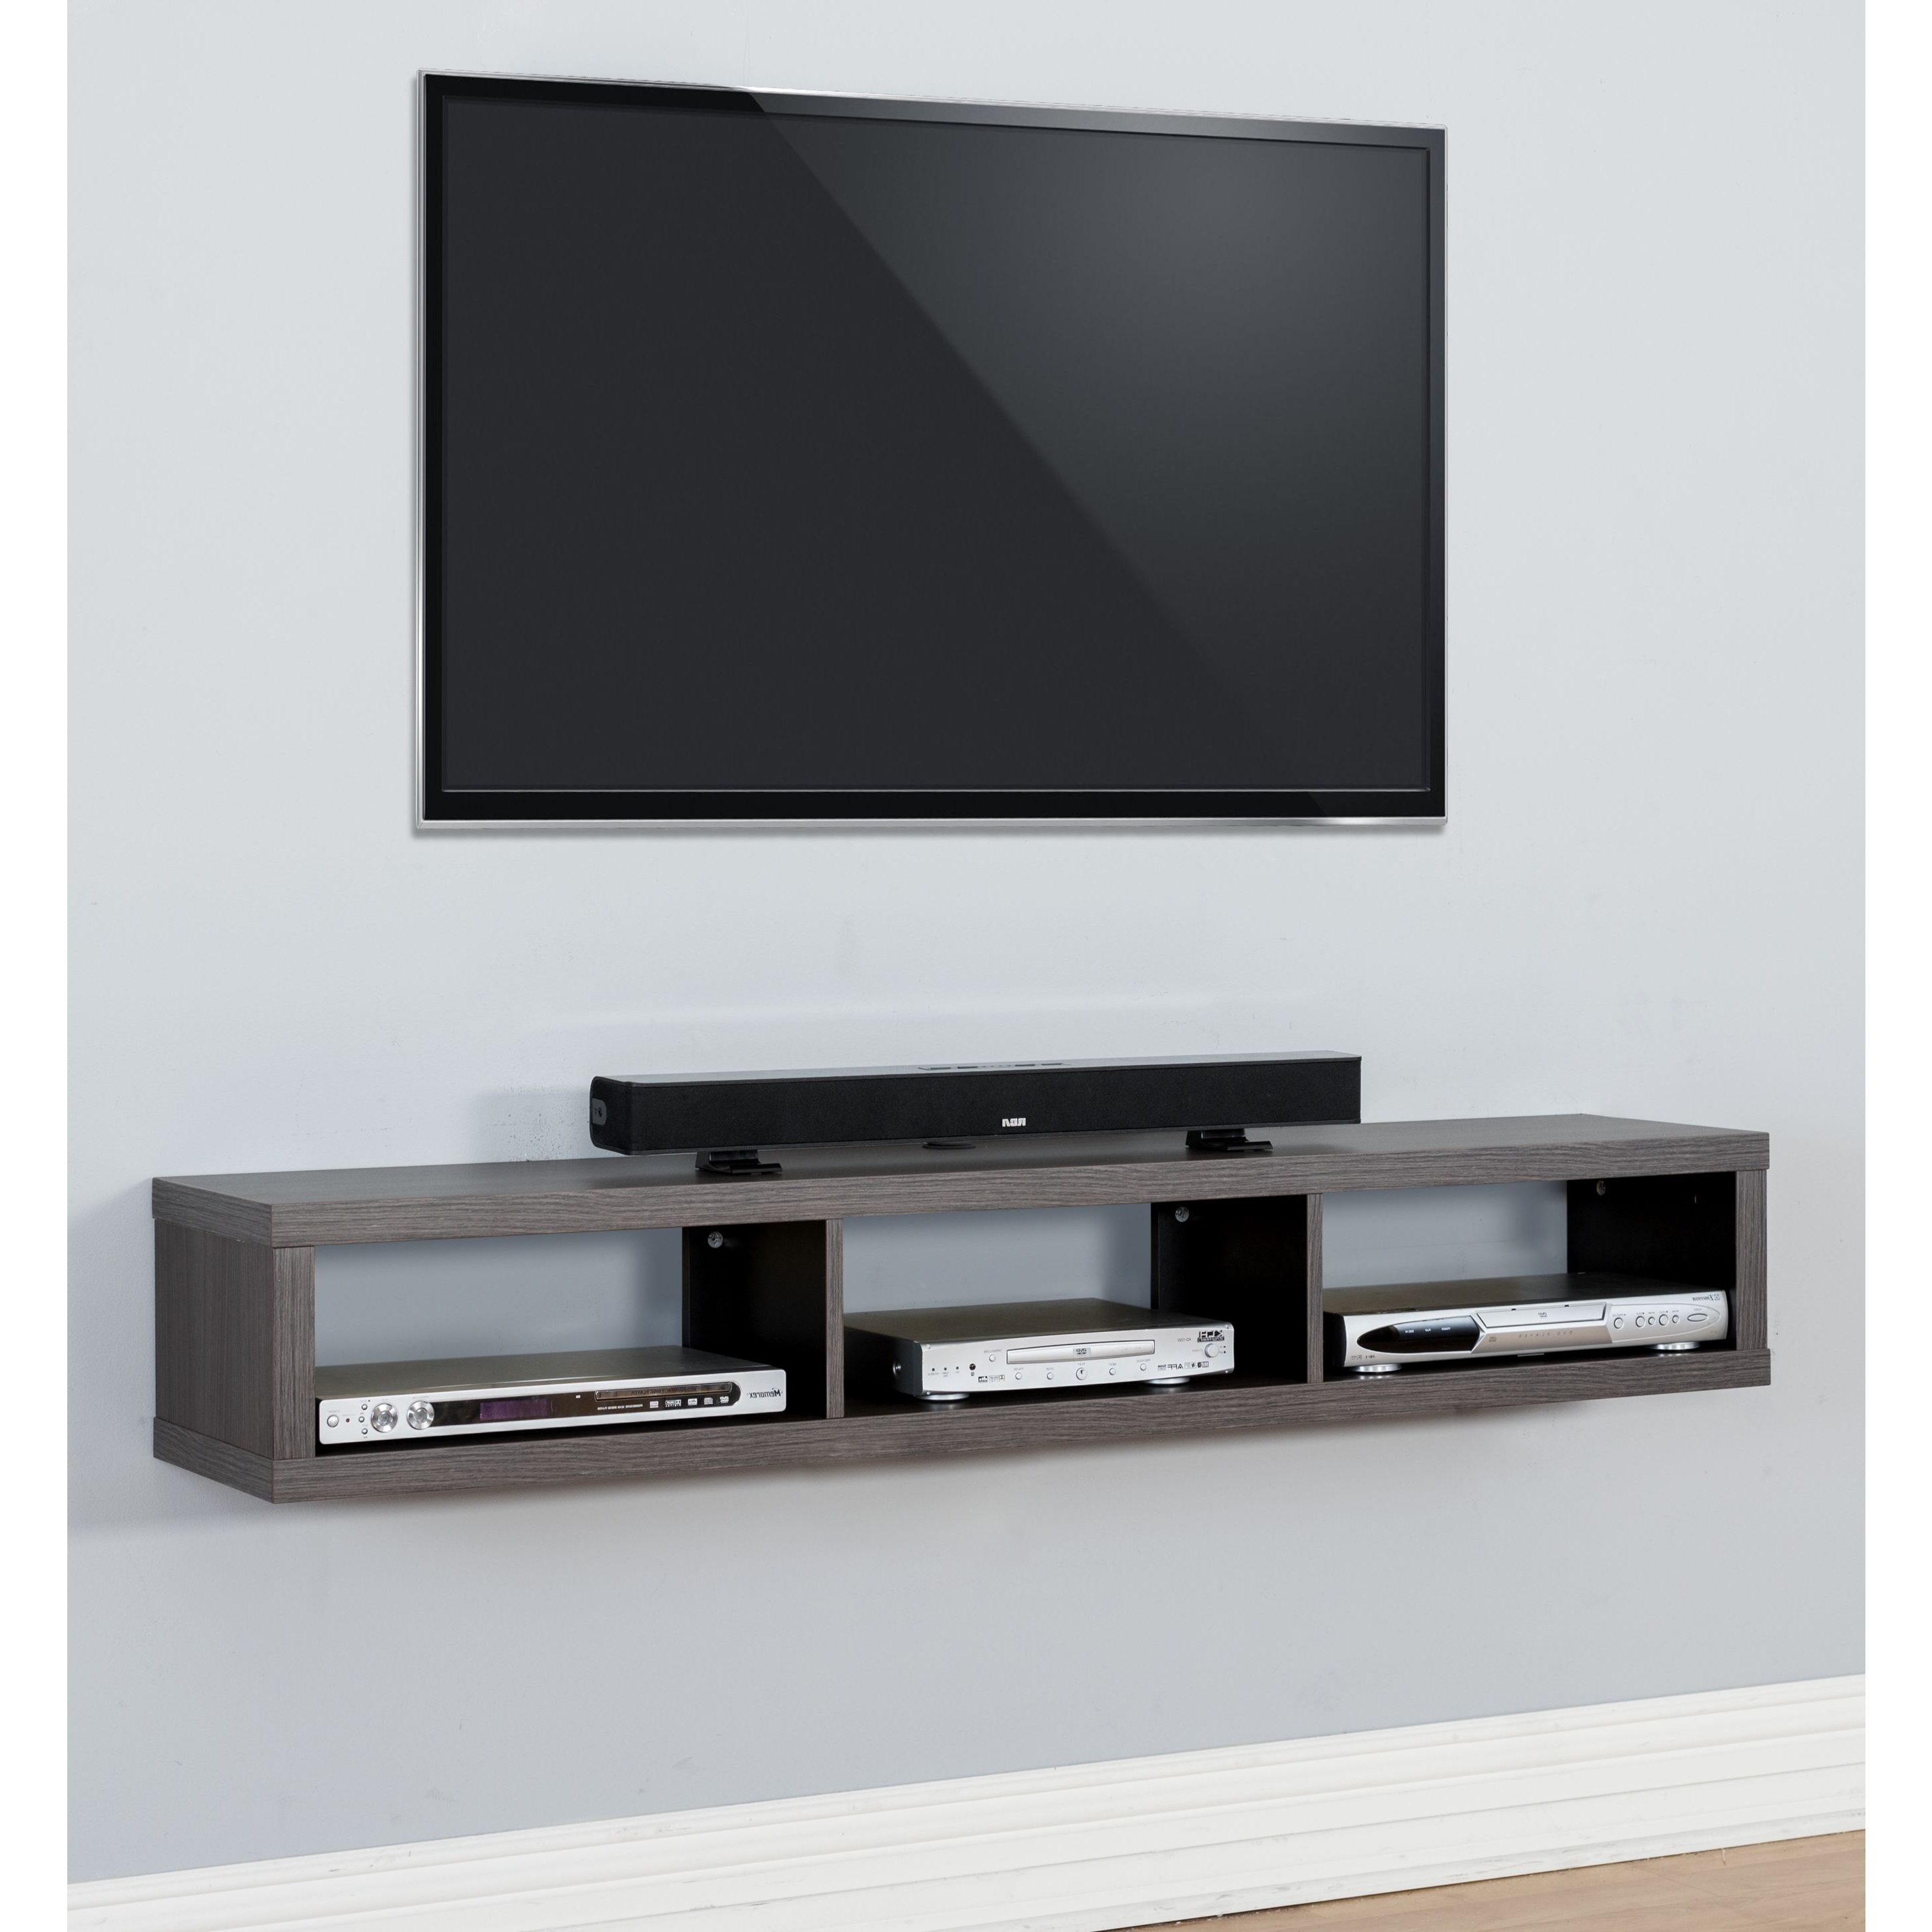 Wall Mounted Tv Console (View 10 of 15)